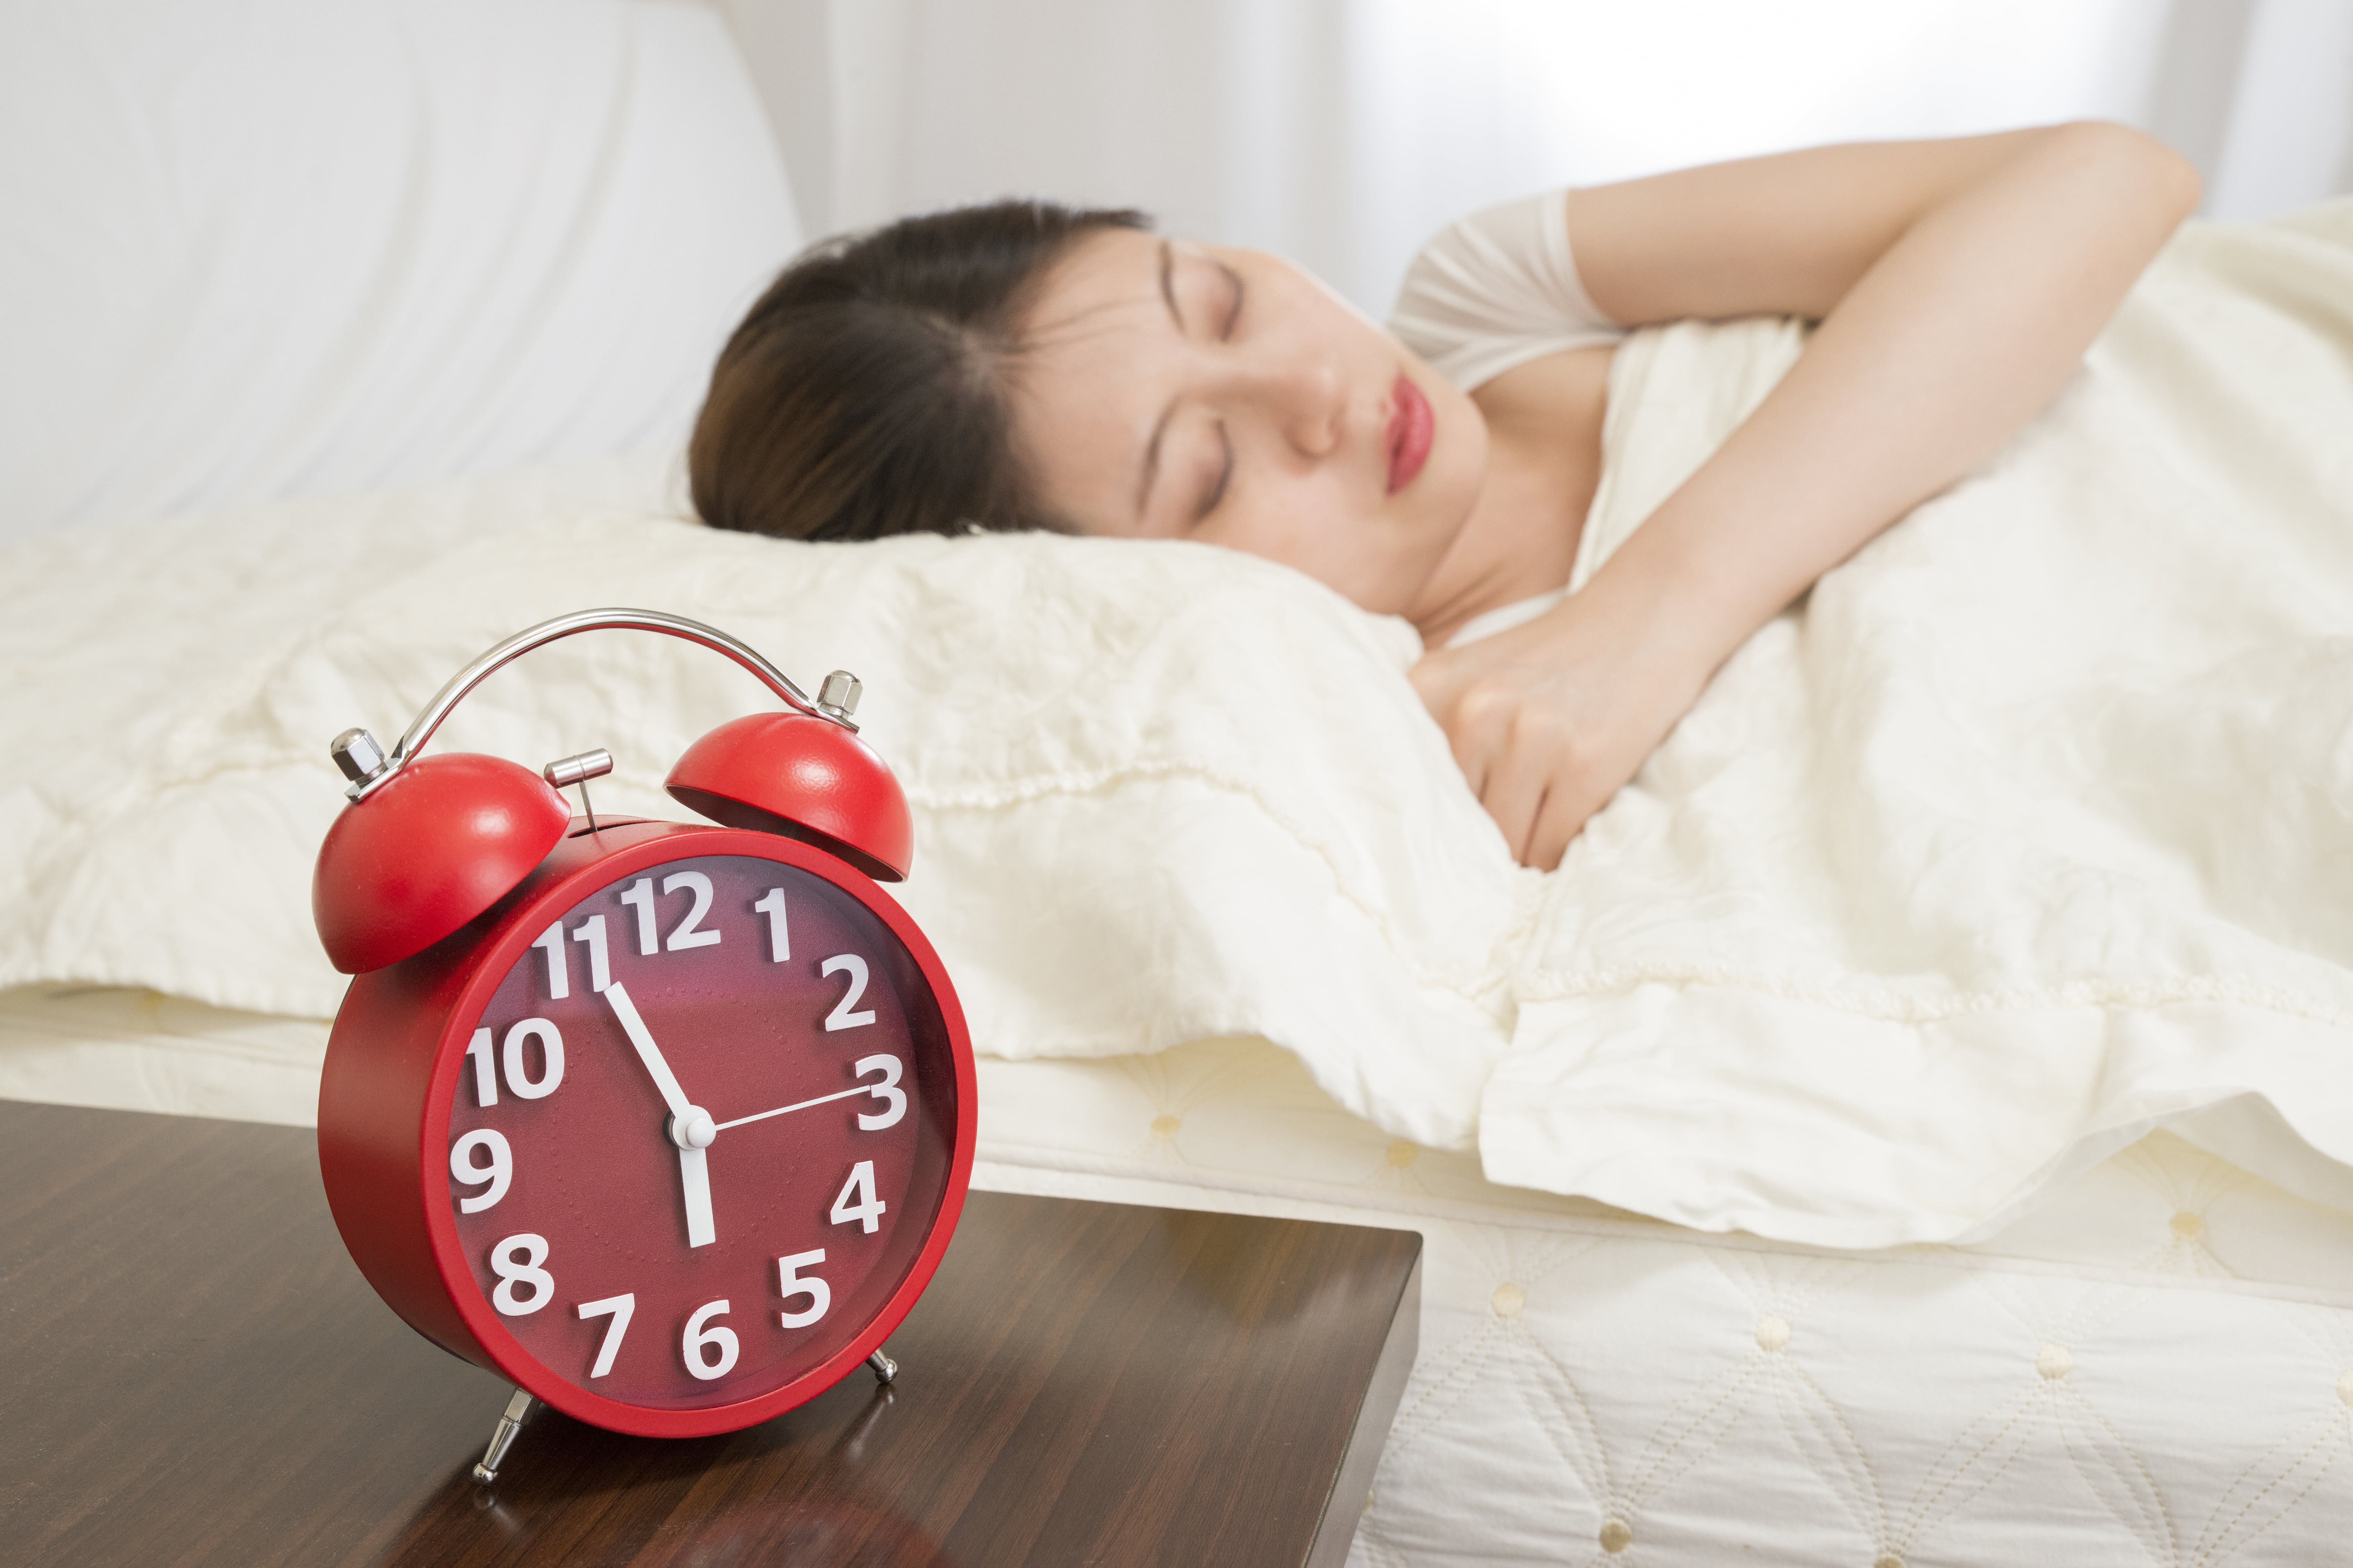 young lady sleeping in bed with a red alarm clock